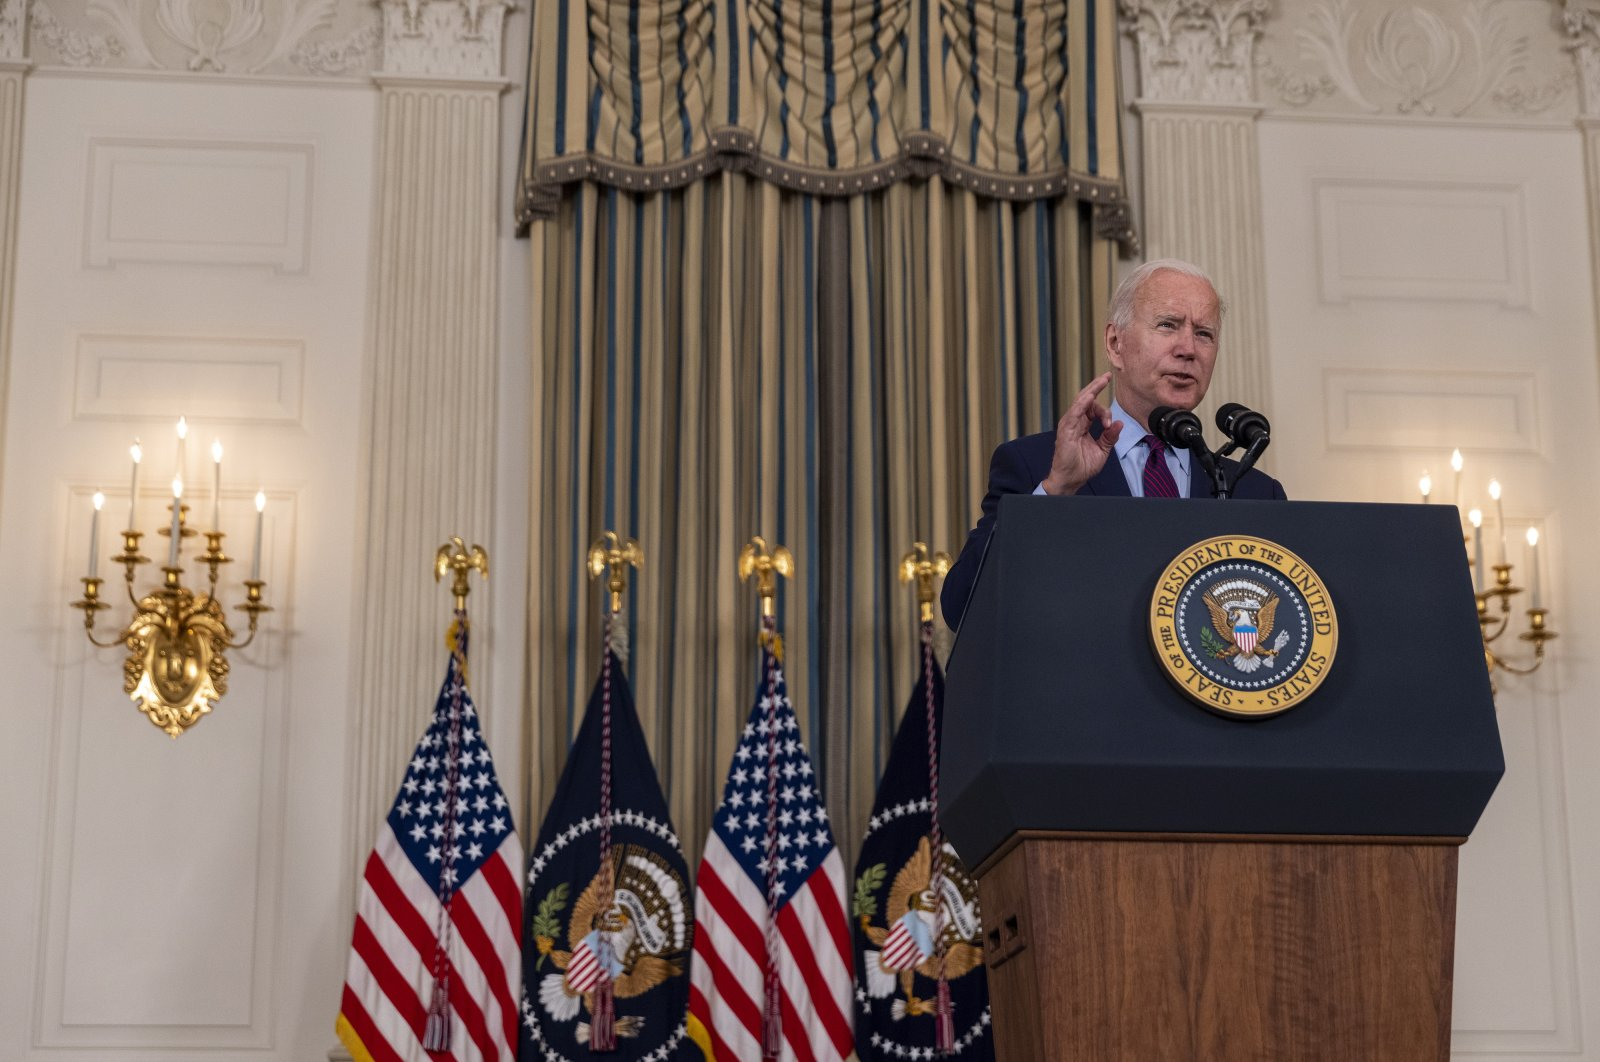 U.S. President Joe Biden delivers remarks in the state dining room at White House in Washington, D.C., U.S., Oct. 4, 2021. (EPA Photo)